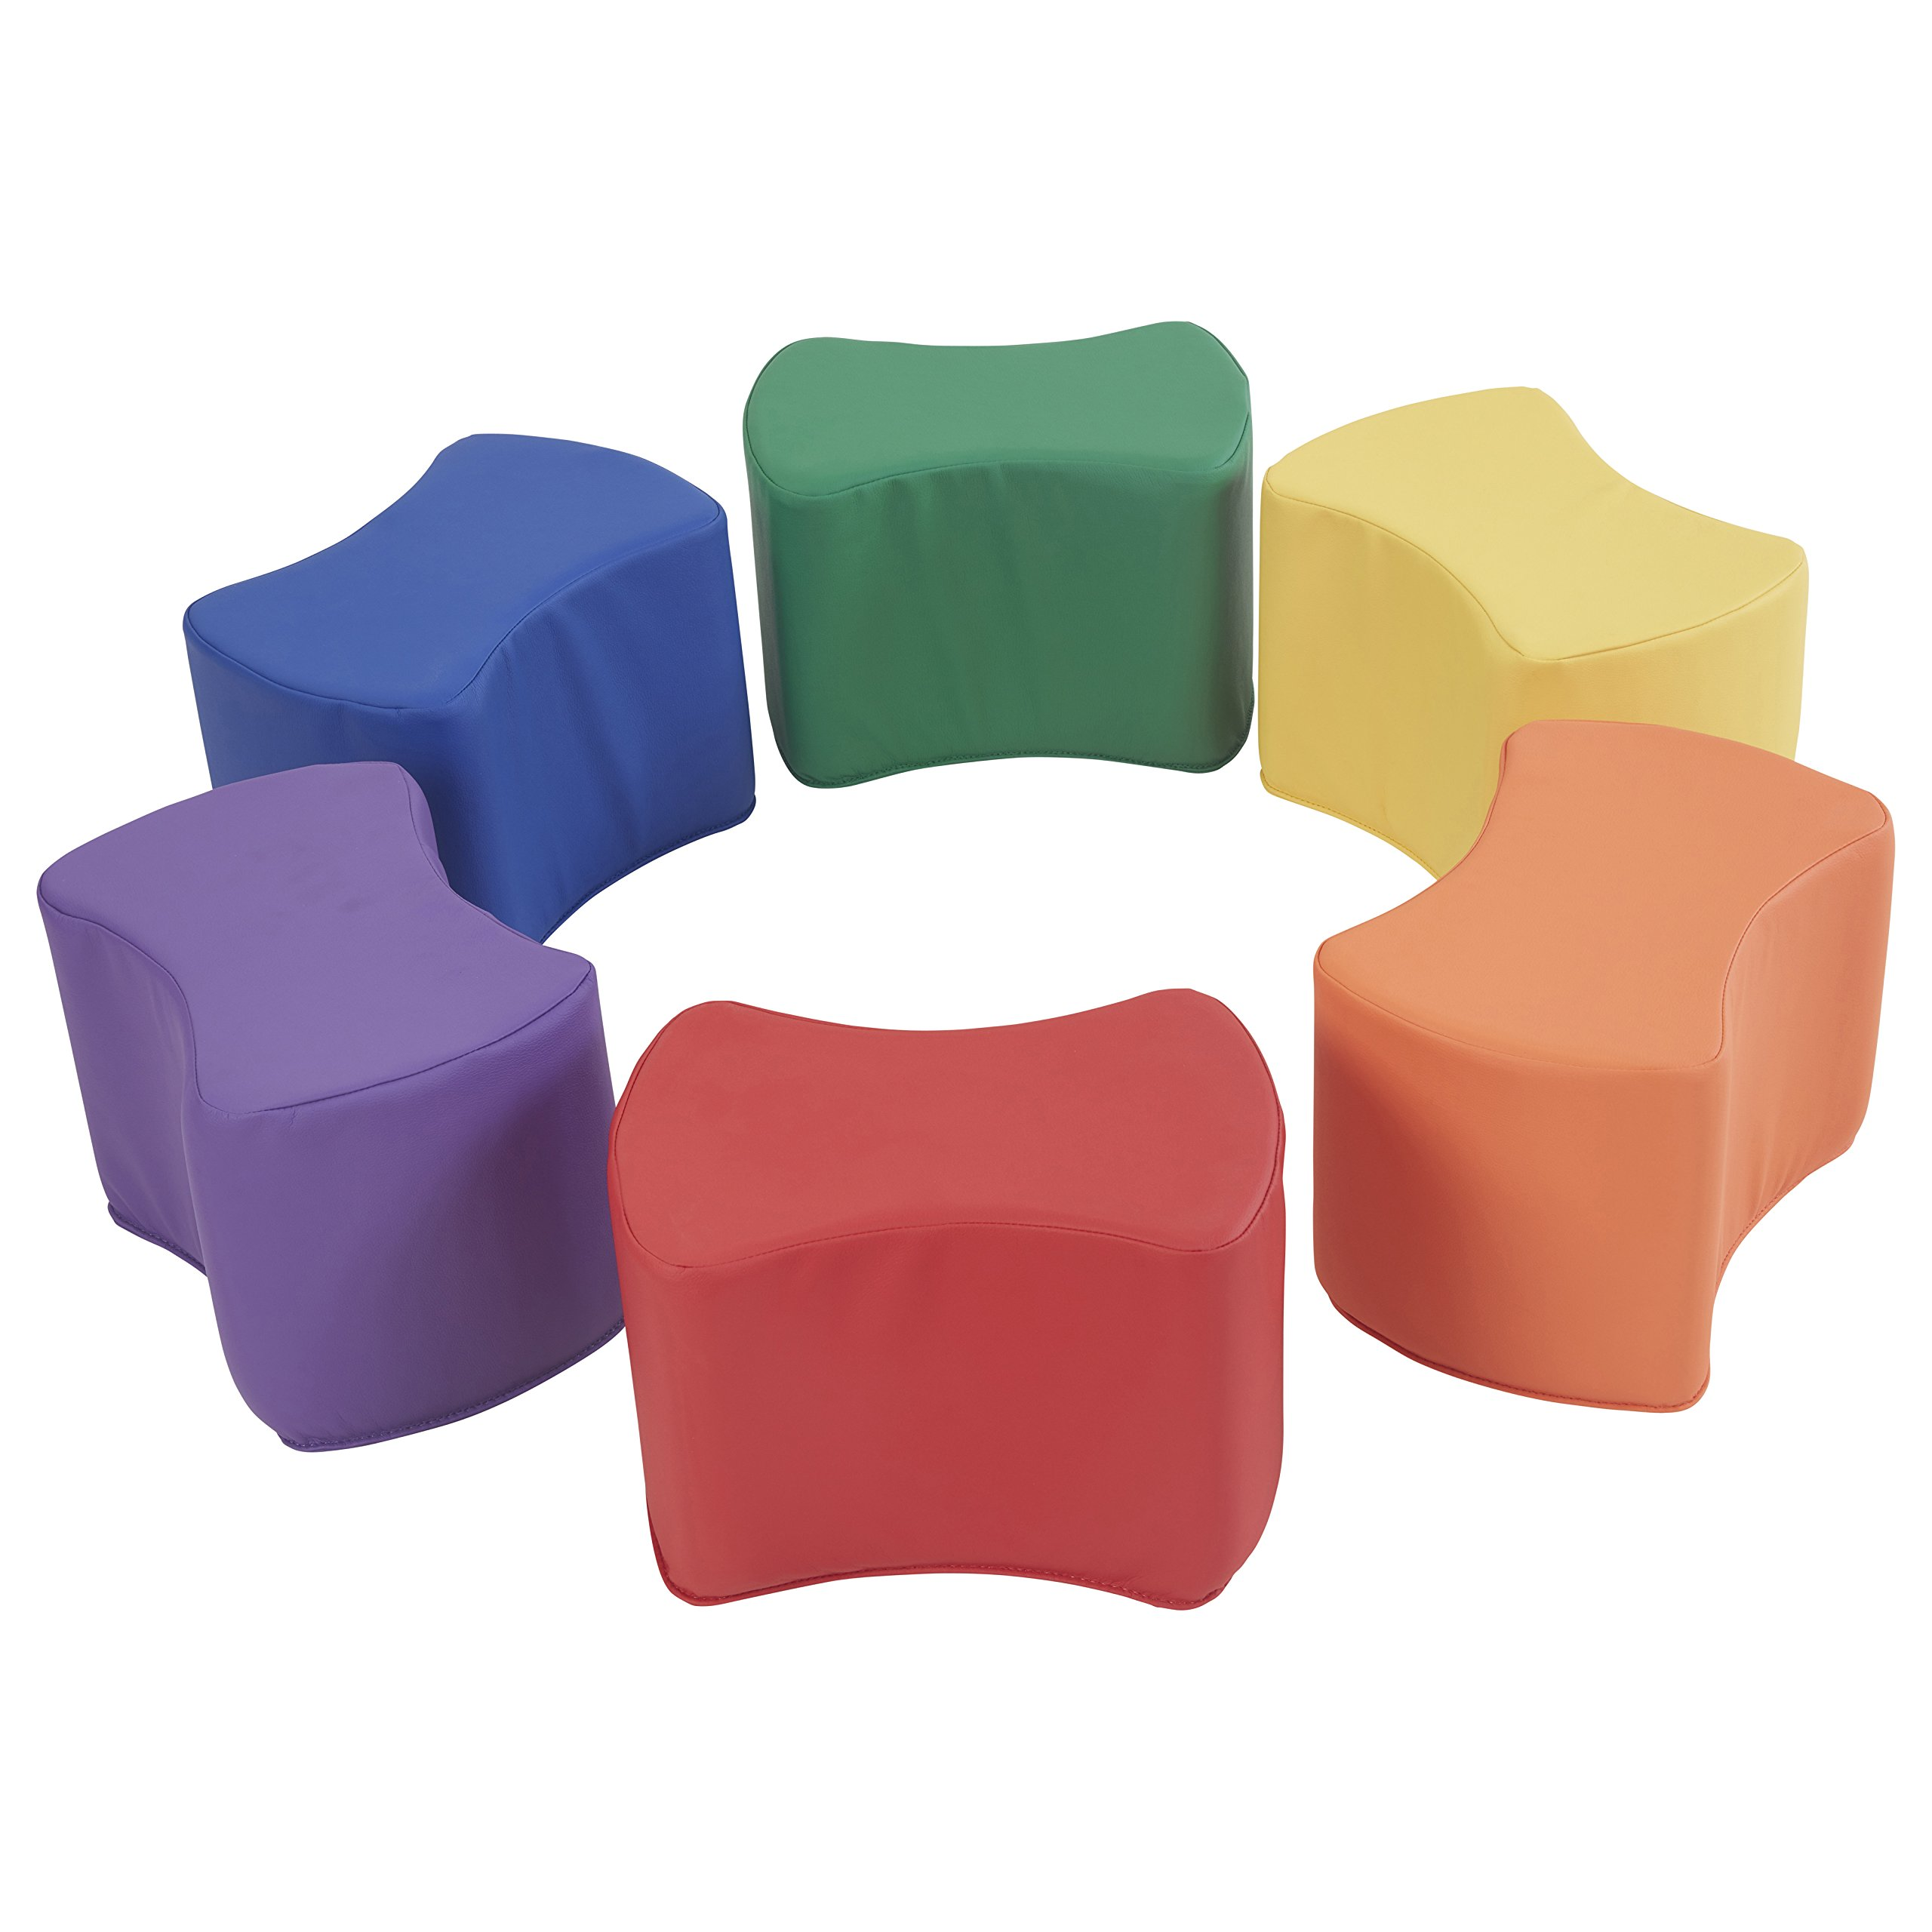 ECR4Kids SoftZone Butterfly Stool Modular Seating Set for Kids, Primary (6-Piece)